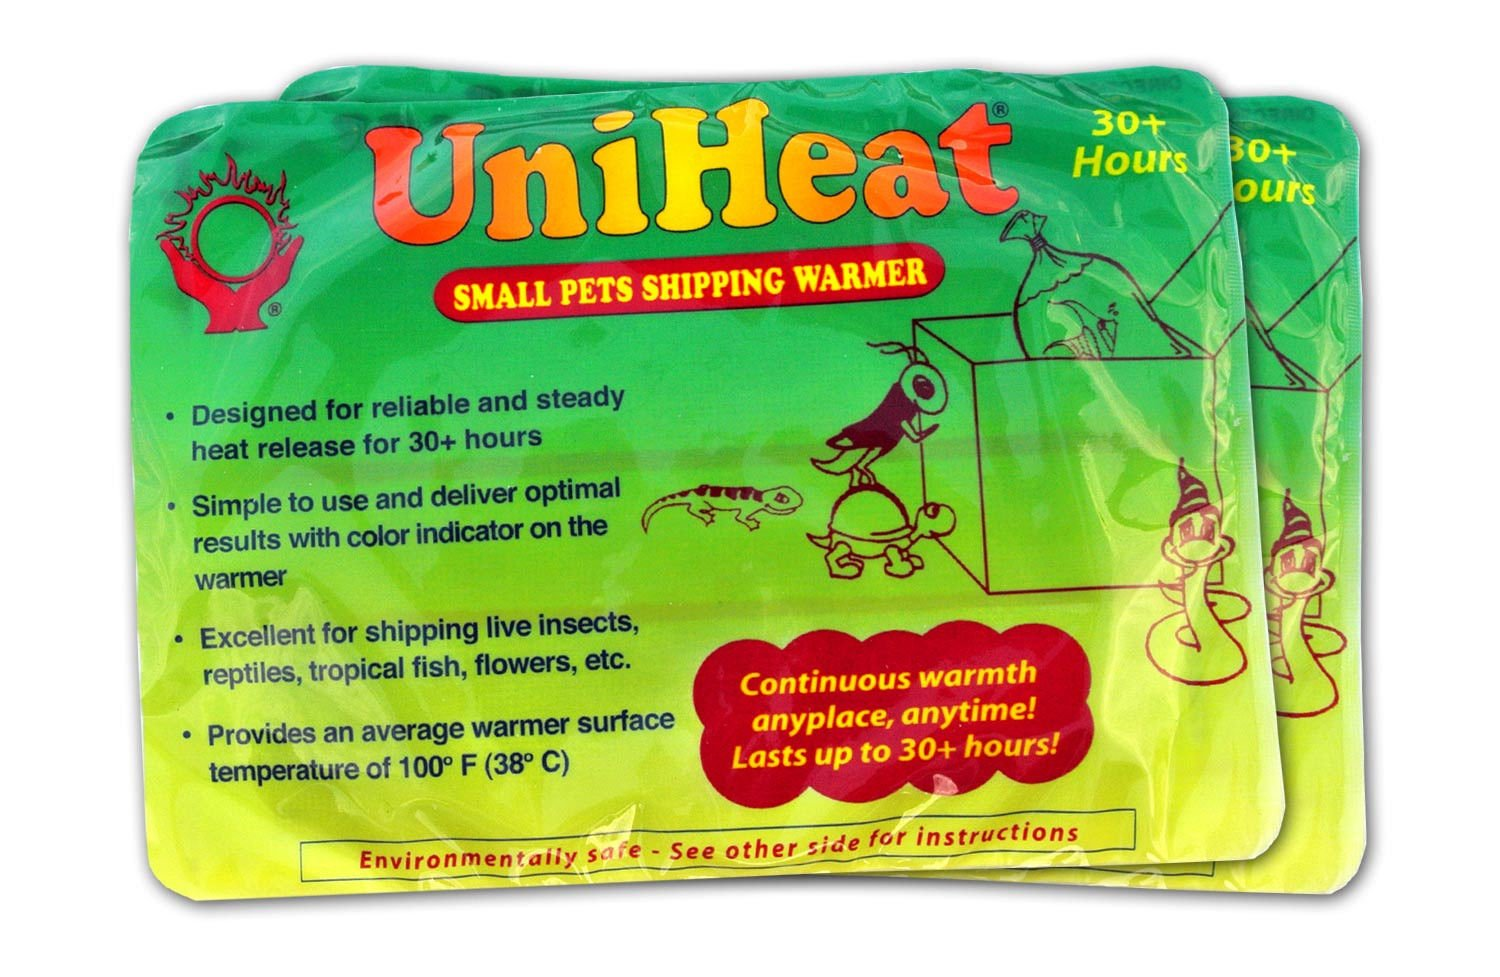 Uniheat Shipping Warmer 30+ Hours, 8 PACK >PLUS!< 1 - 10''x18'' Shipping Bags, 30+ Hour Warmth for Shipping Live Corals, Small Pets, Fish, Insects, Reptiles, Etc...AND Shipping Bags to Hold in the Heat